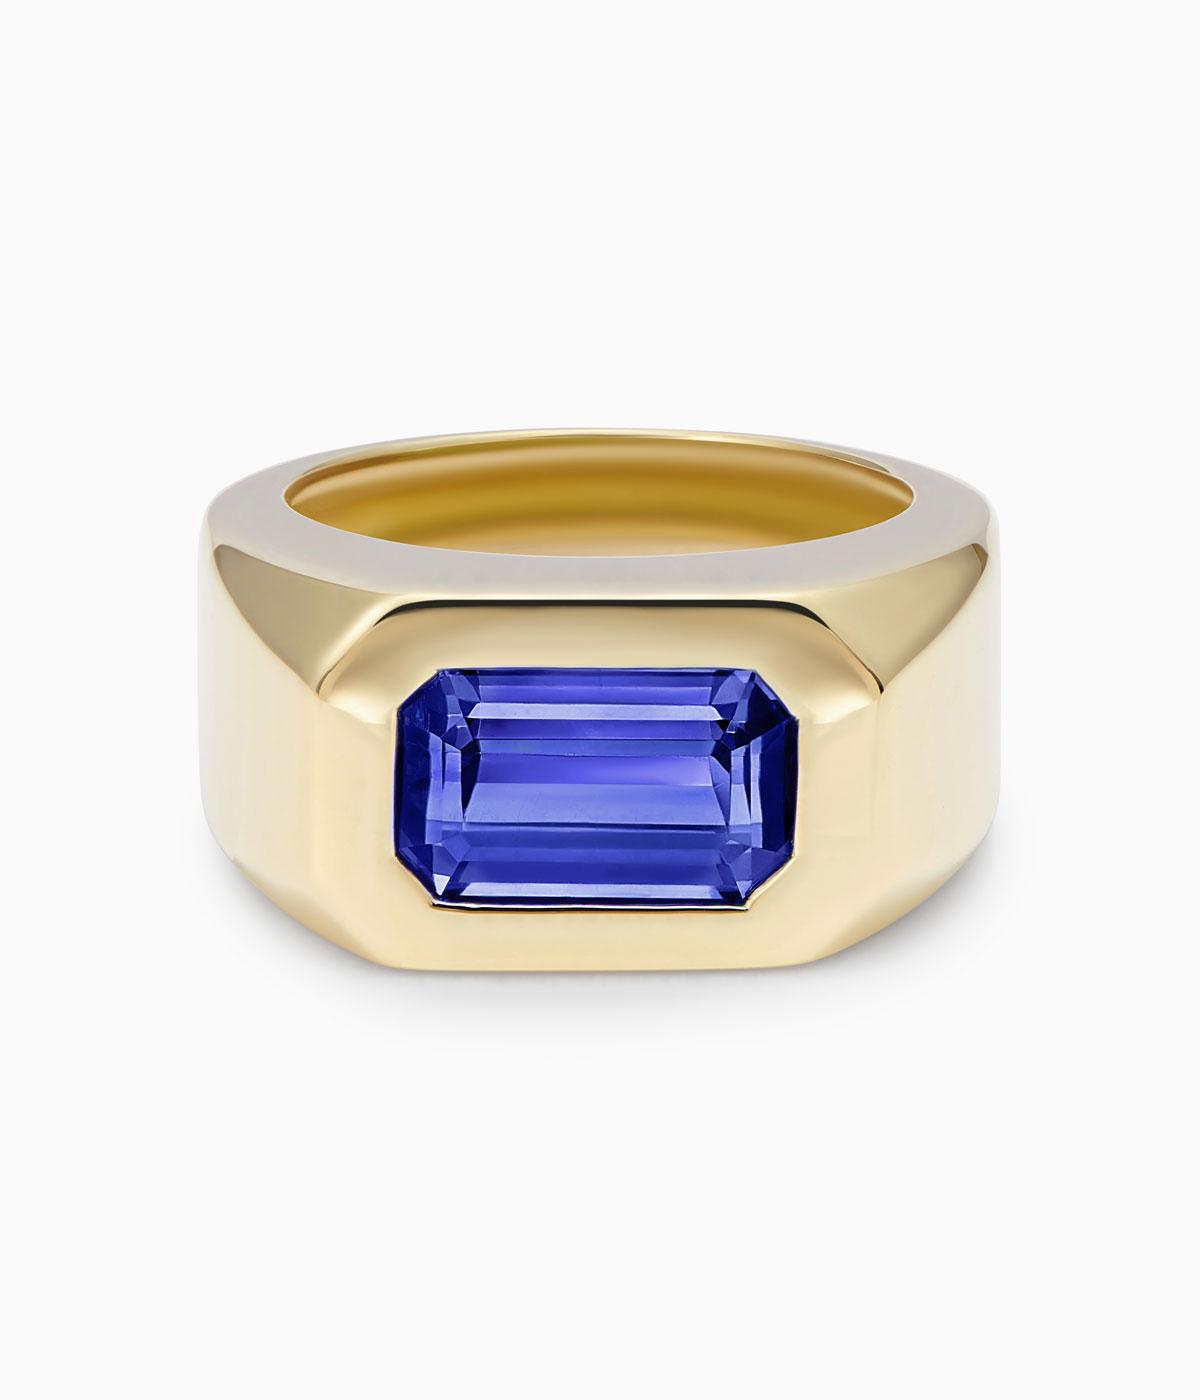 Gold ring with blue stone in middle